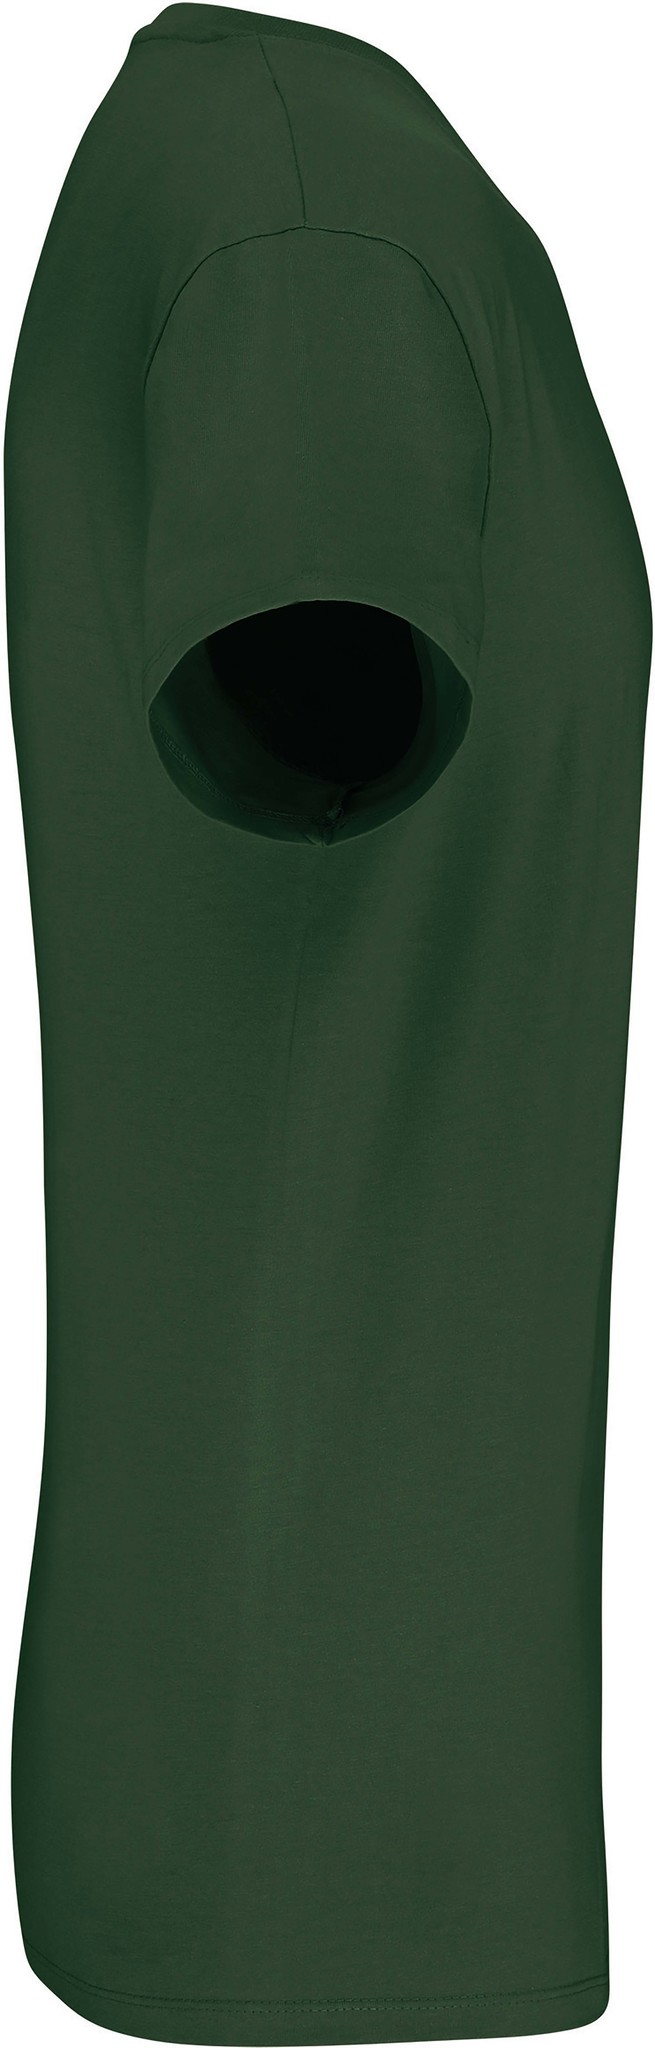 Eco-Friendly Unisex T-shirt -Forest-Green